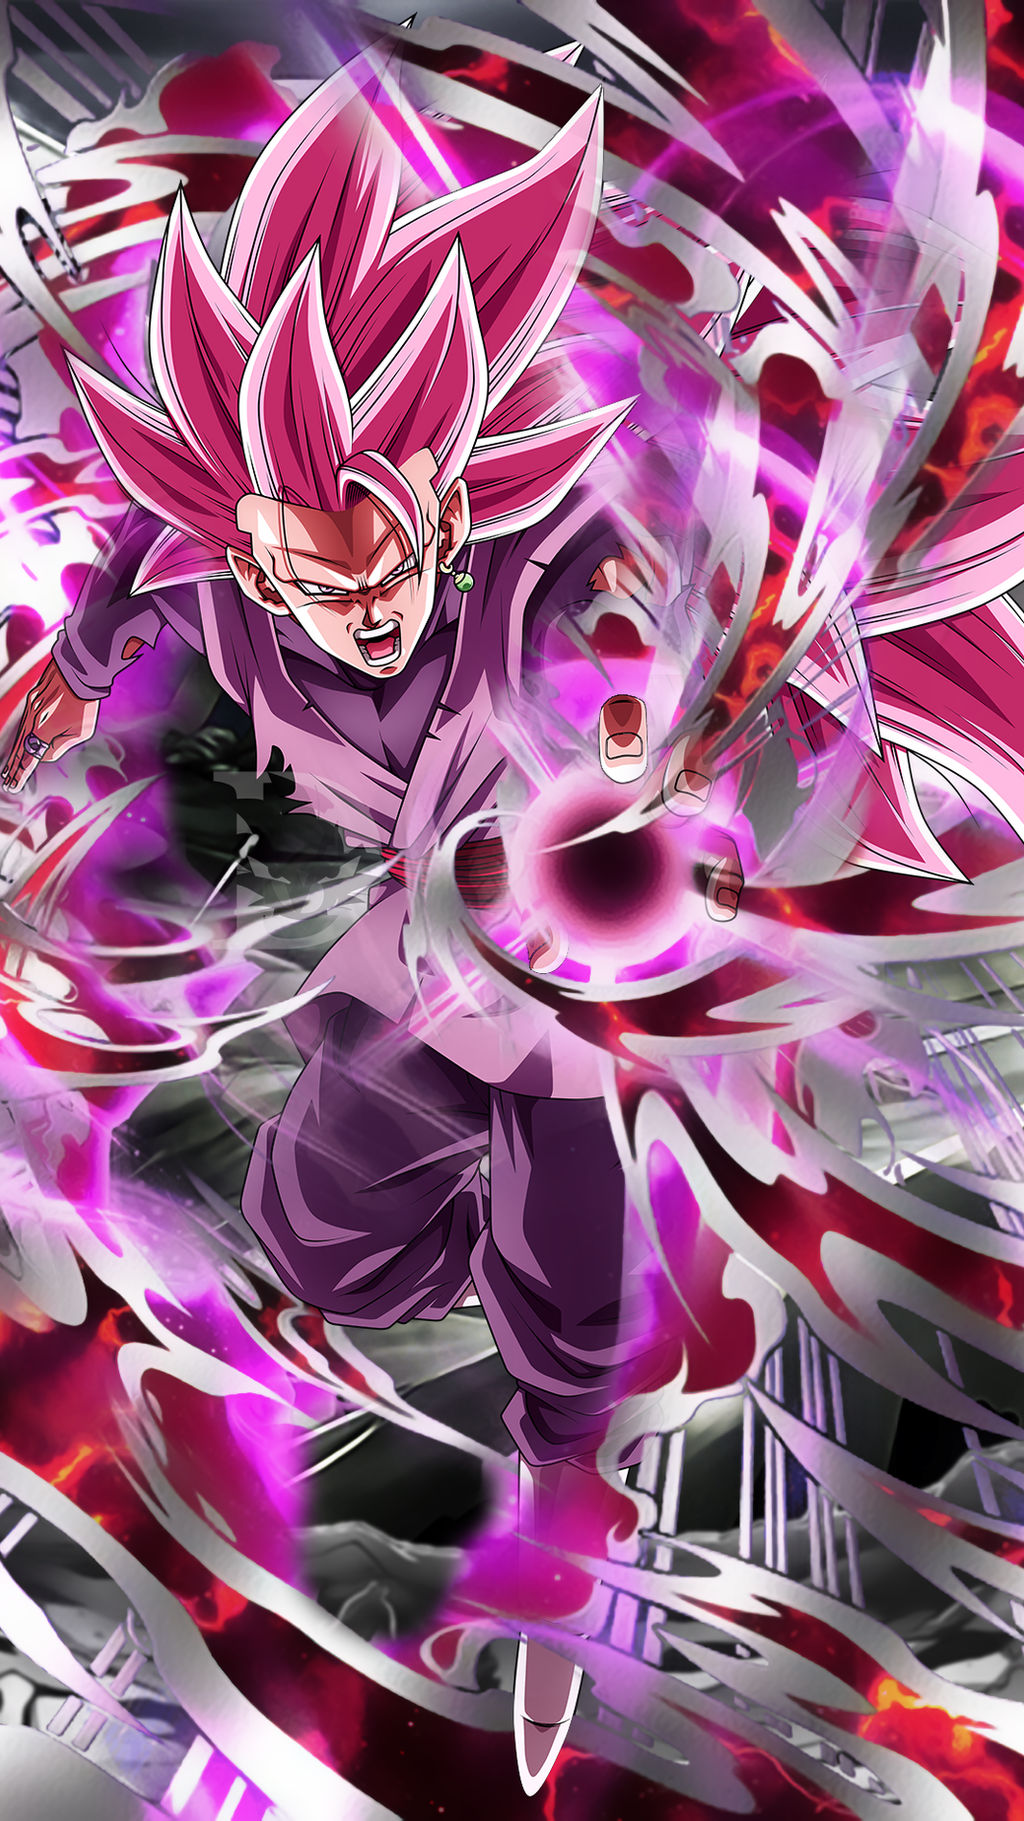 Goku Black Super Saiyan Rose 3 Wallpaper By